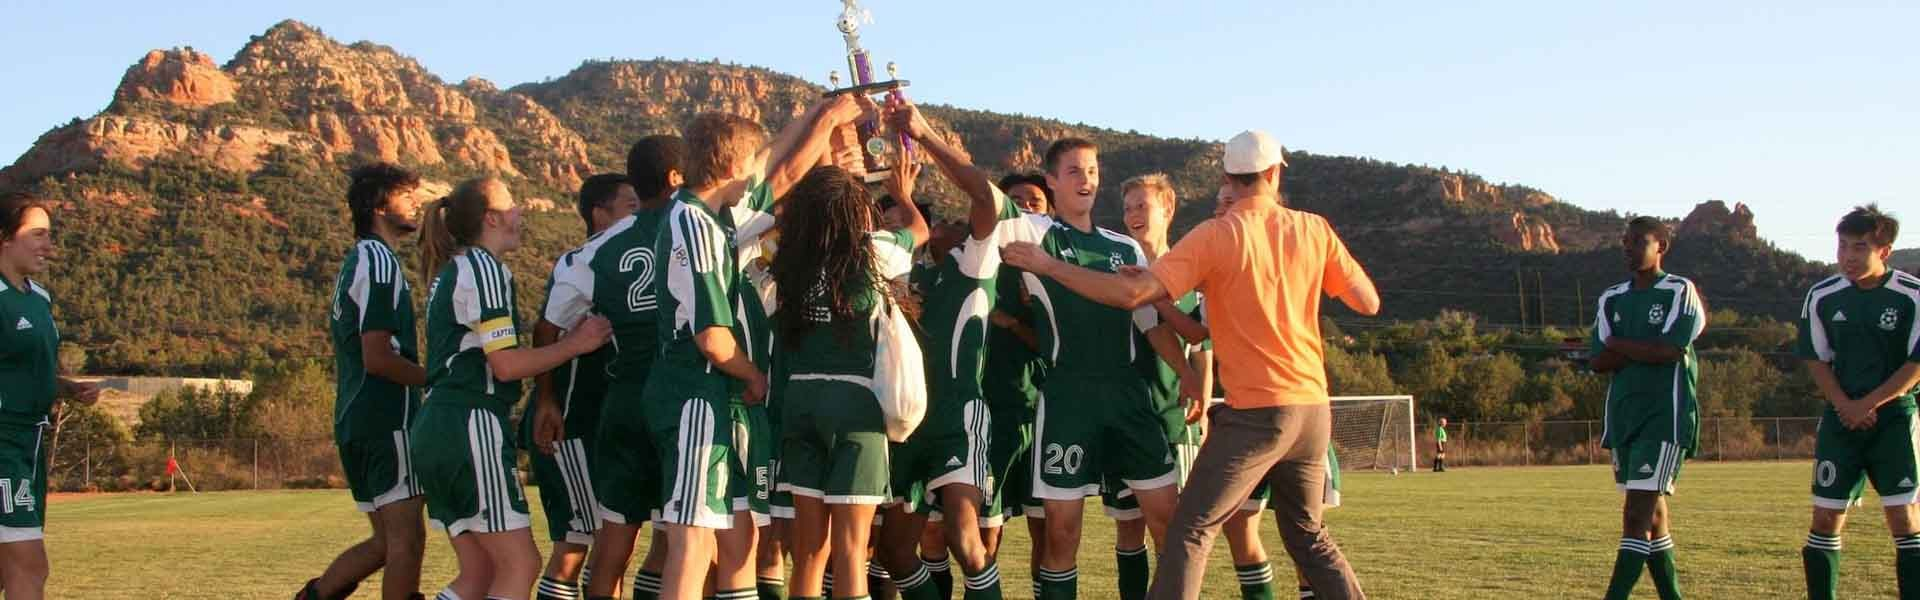 VerdeValleySchool-Highschool-Arizona-Soccercup-MAin-Banner-2019